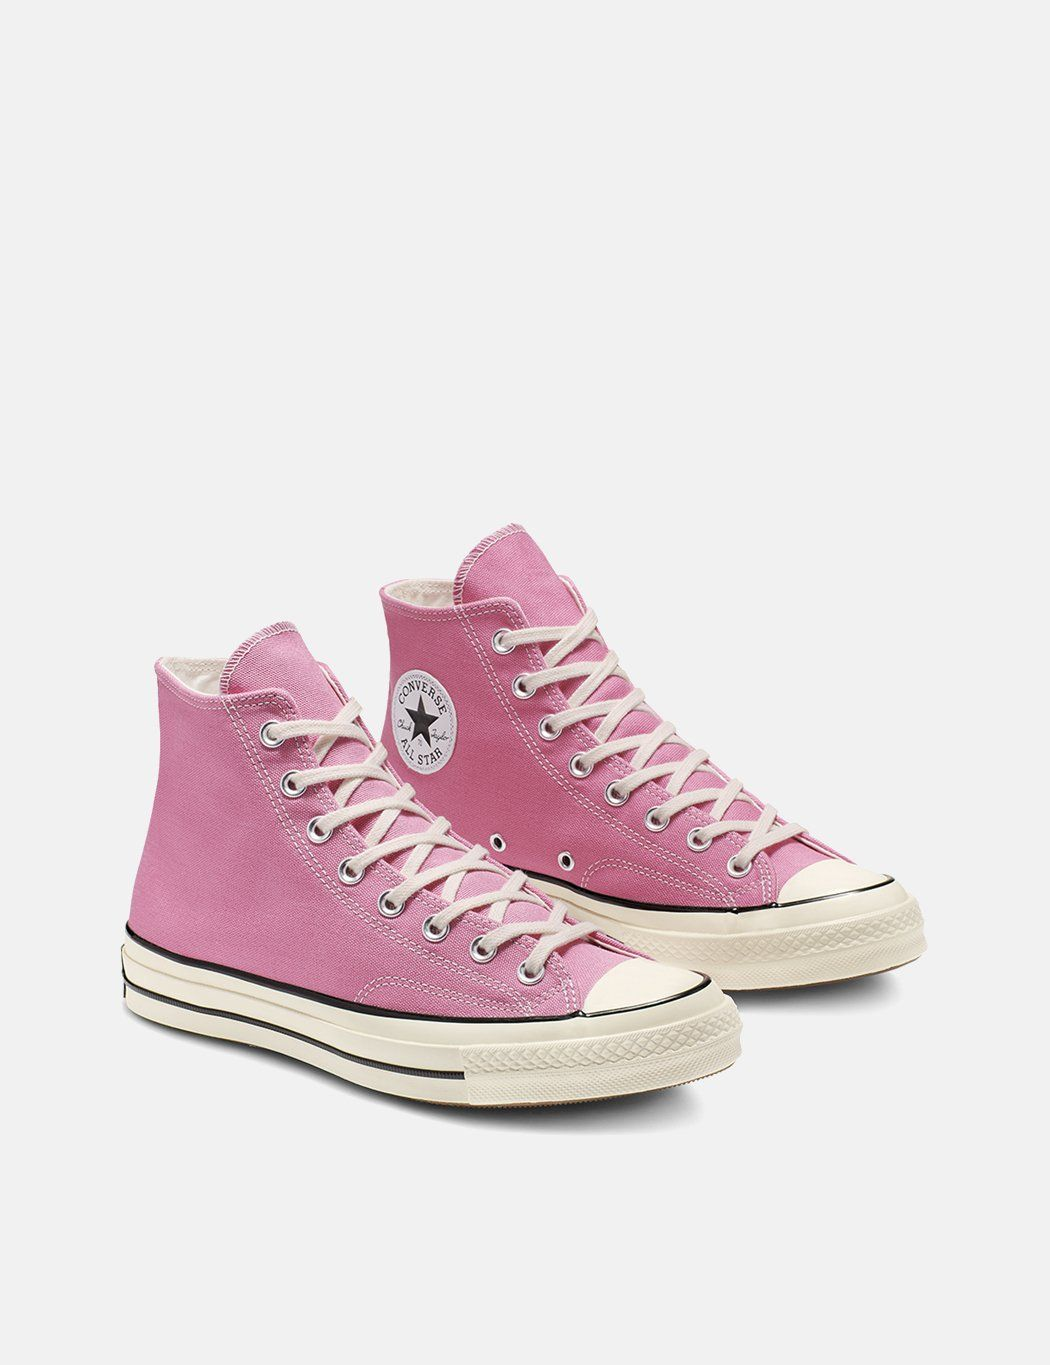 Converse 70s High Pink in 2020 | Brown